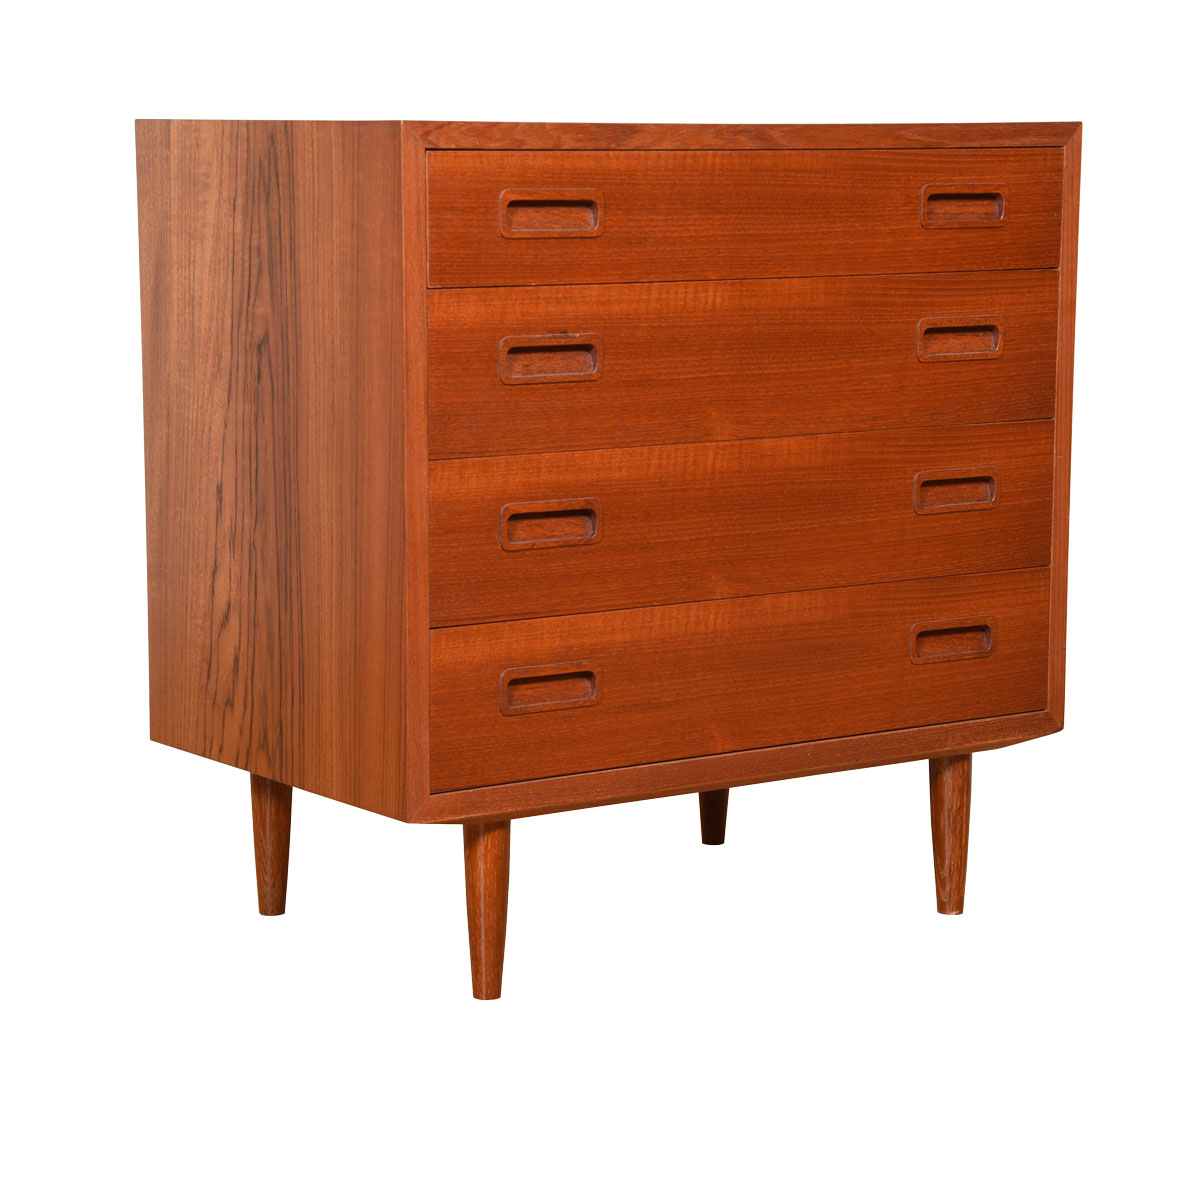 Petite 28″ Danish Teak 4-Drawer Chest of Drawers / Dresser